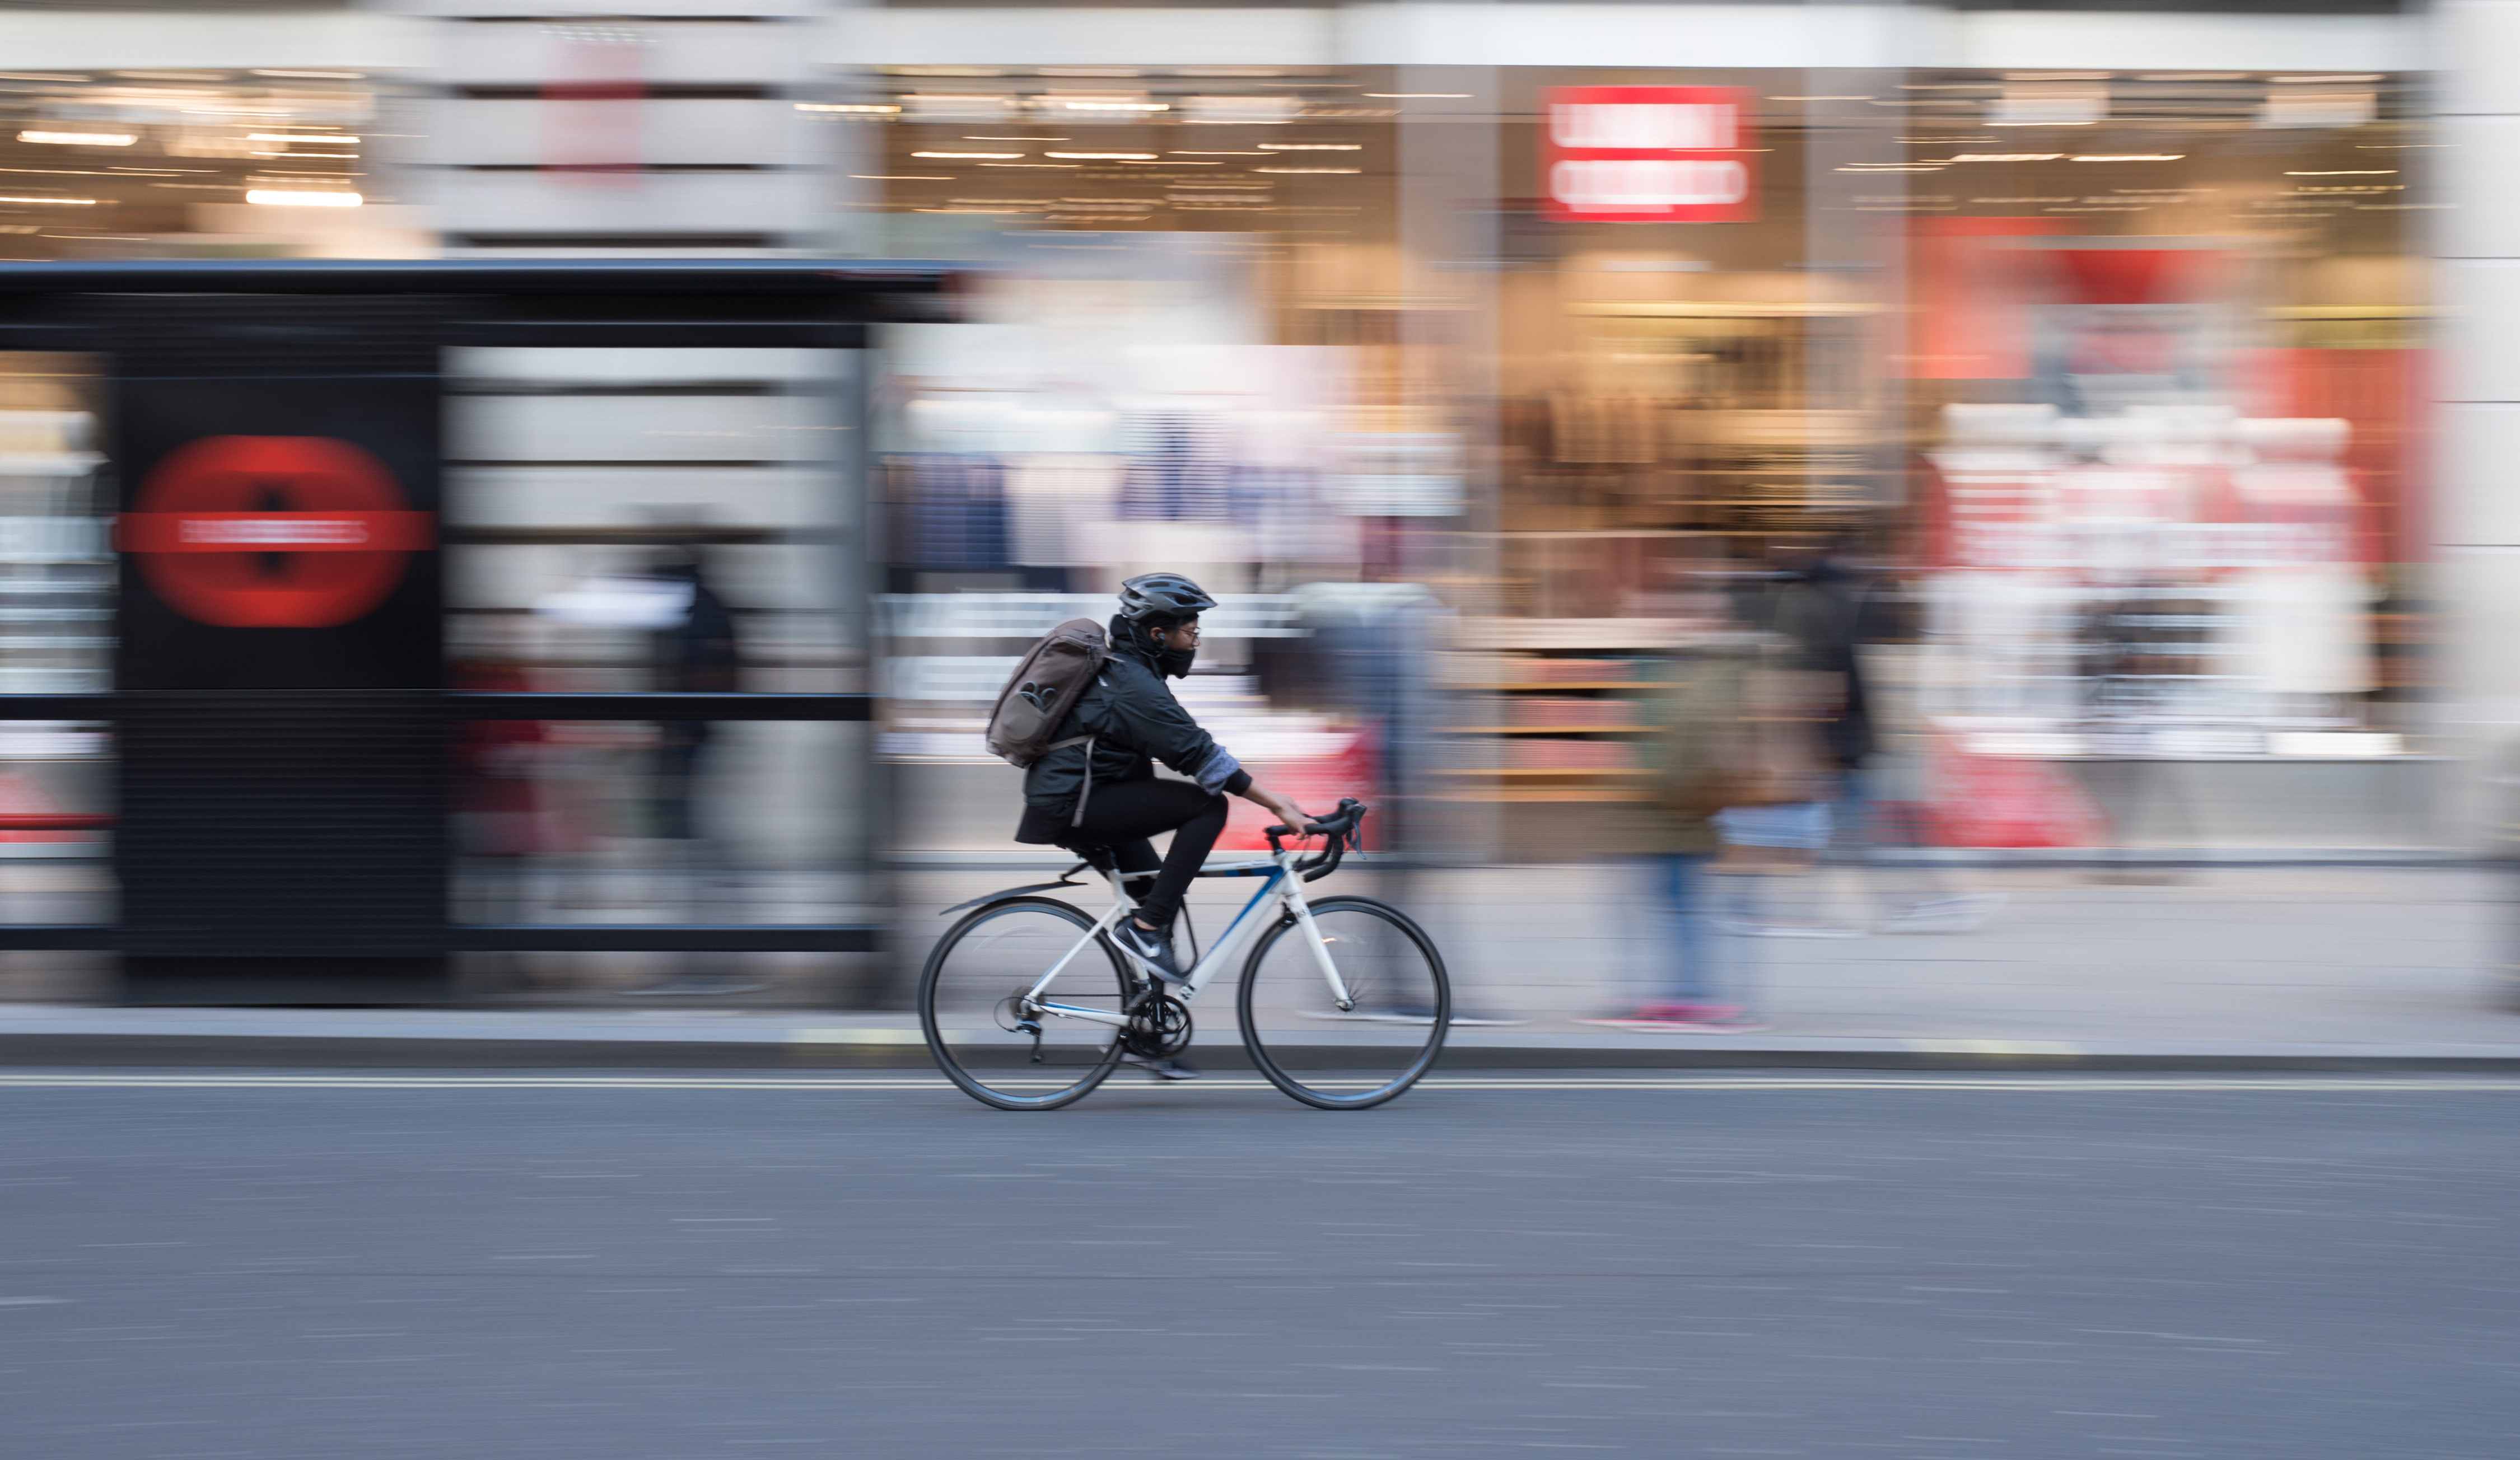 In-focus cyclist riding in front of blurred shop windows.